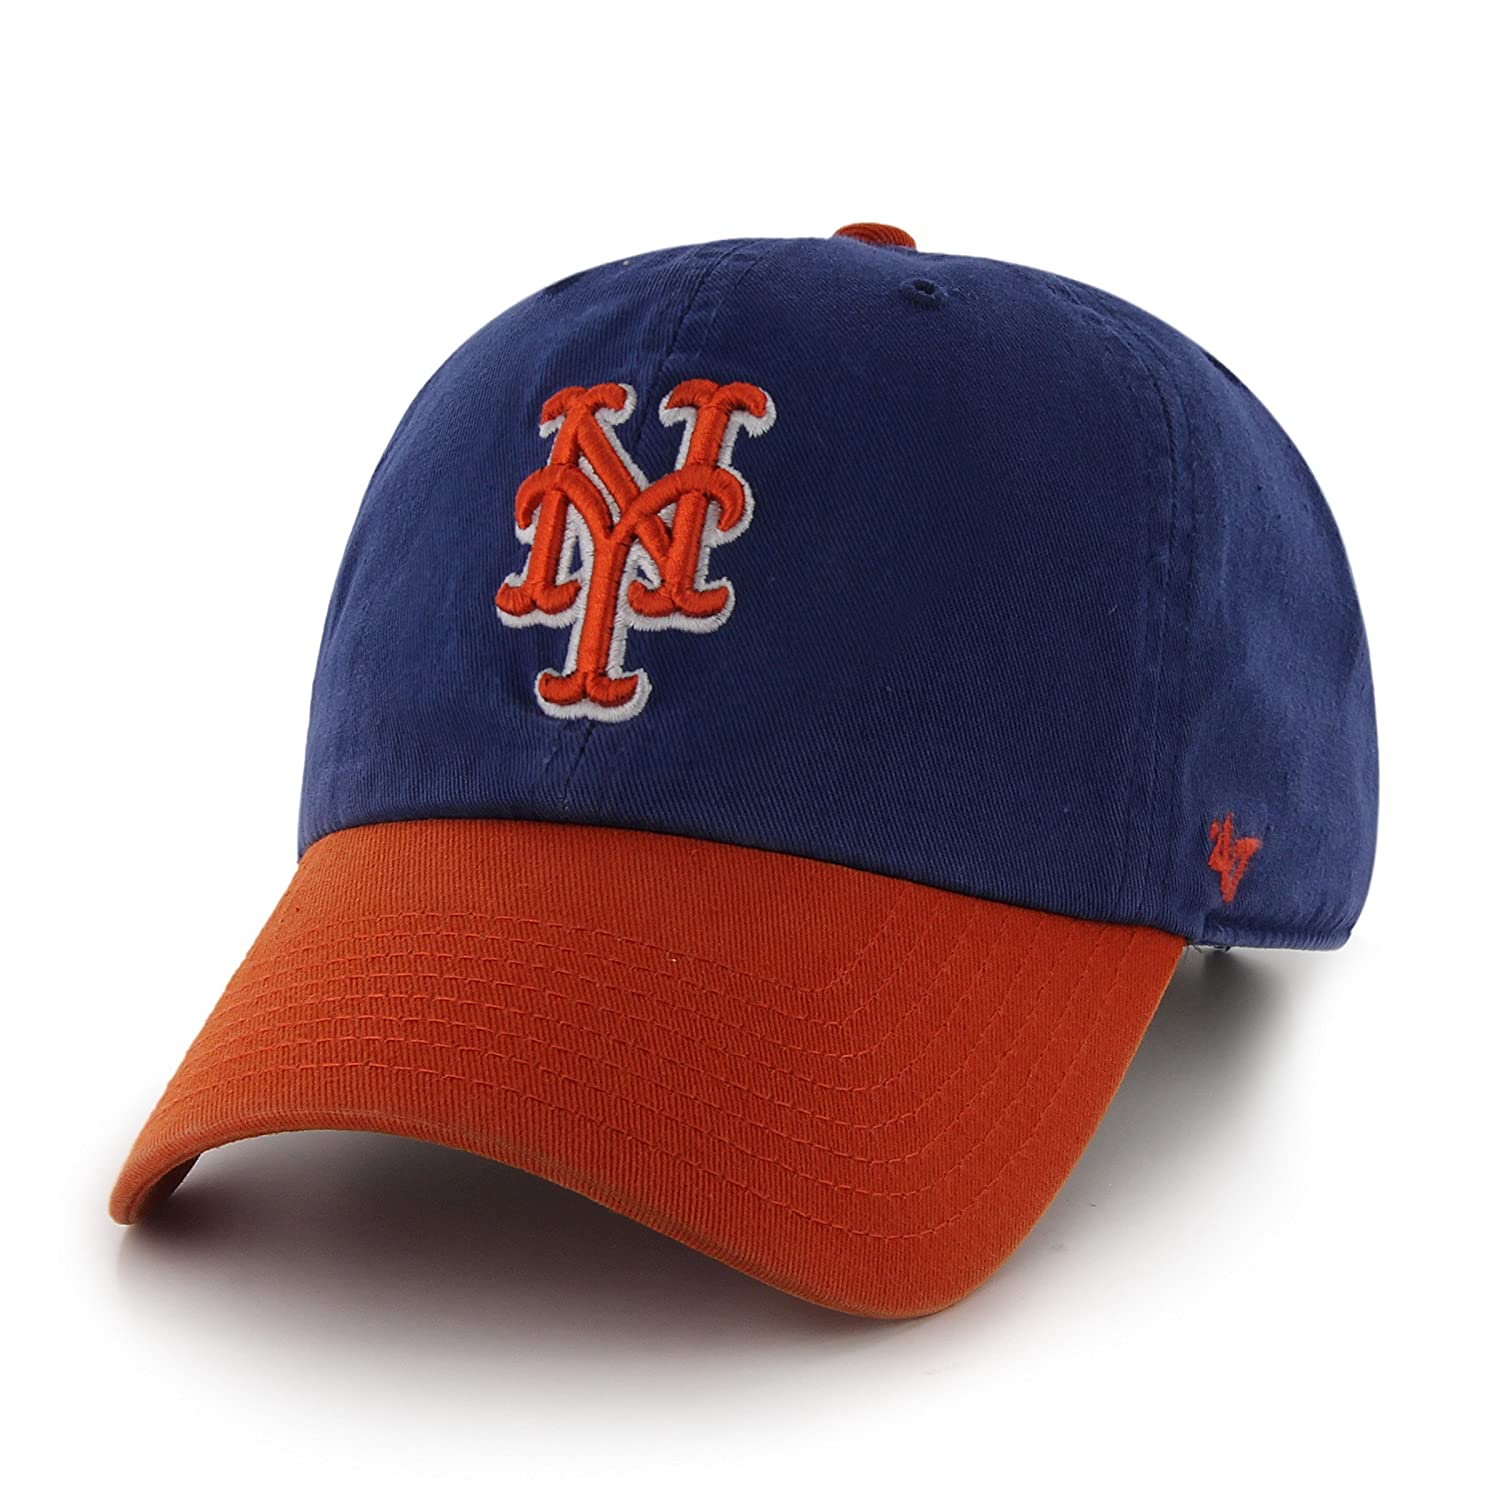 4e7713705cdcb Amazon.com   MLB New York Mets  47 Brand Clean Up Two Tone Adjustable Cap